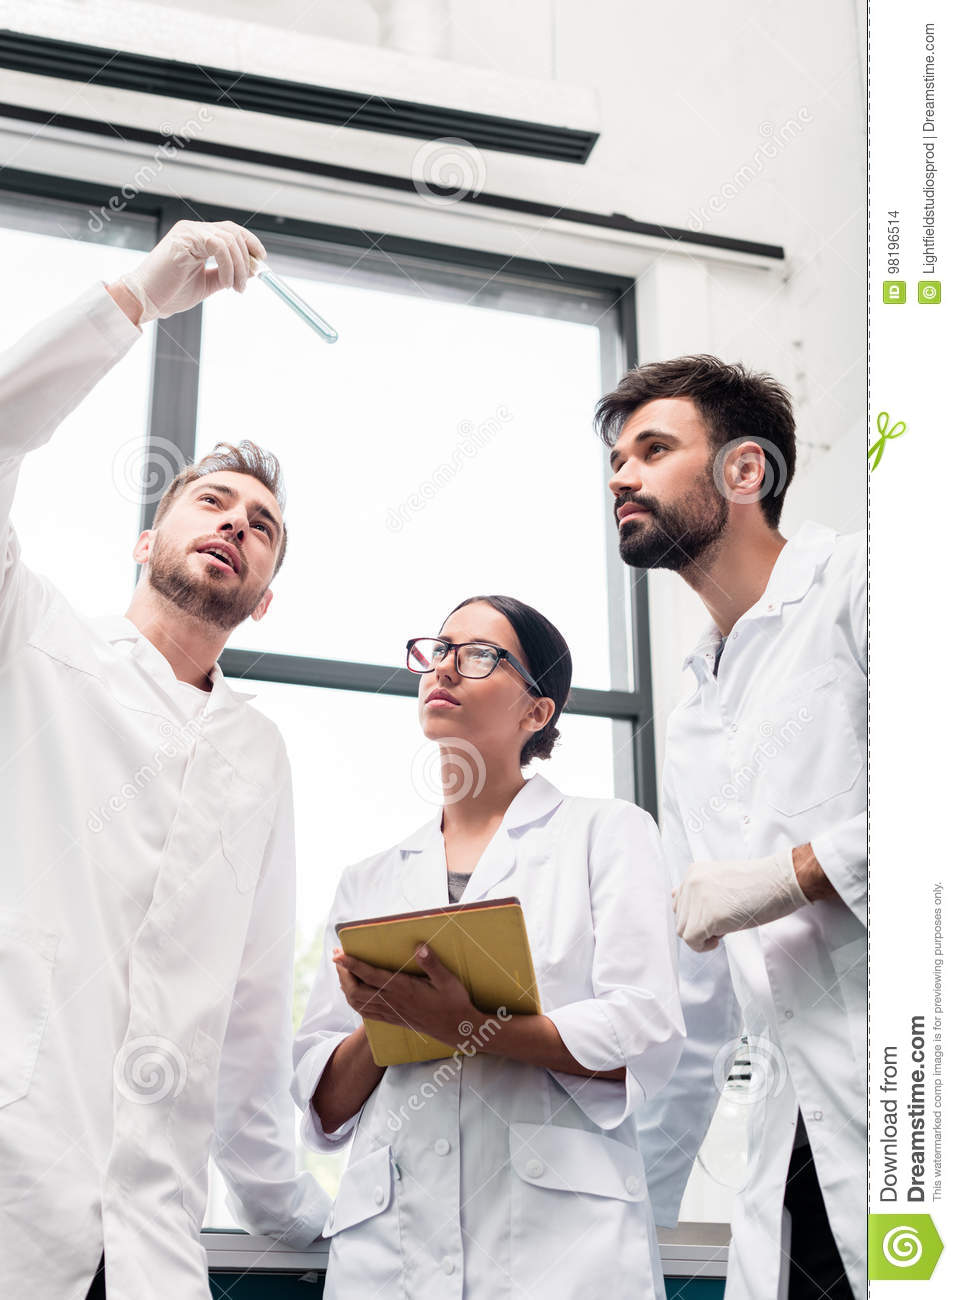 Young scientists in white coats examining test tube and using digital tablet